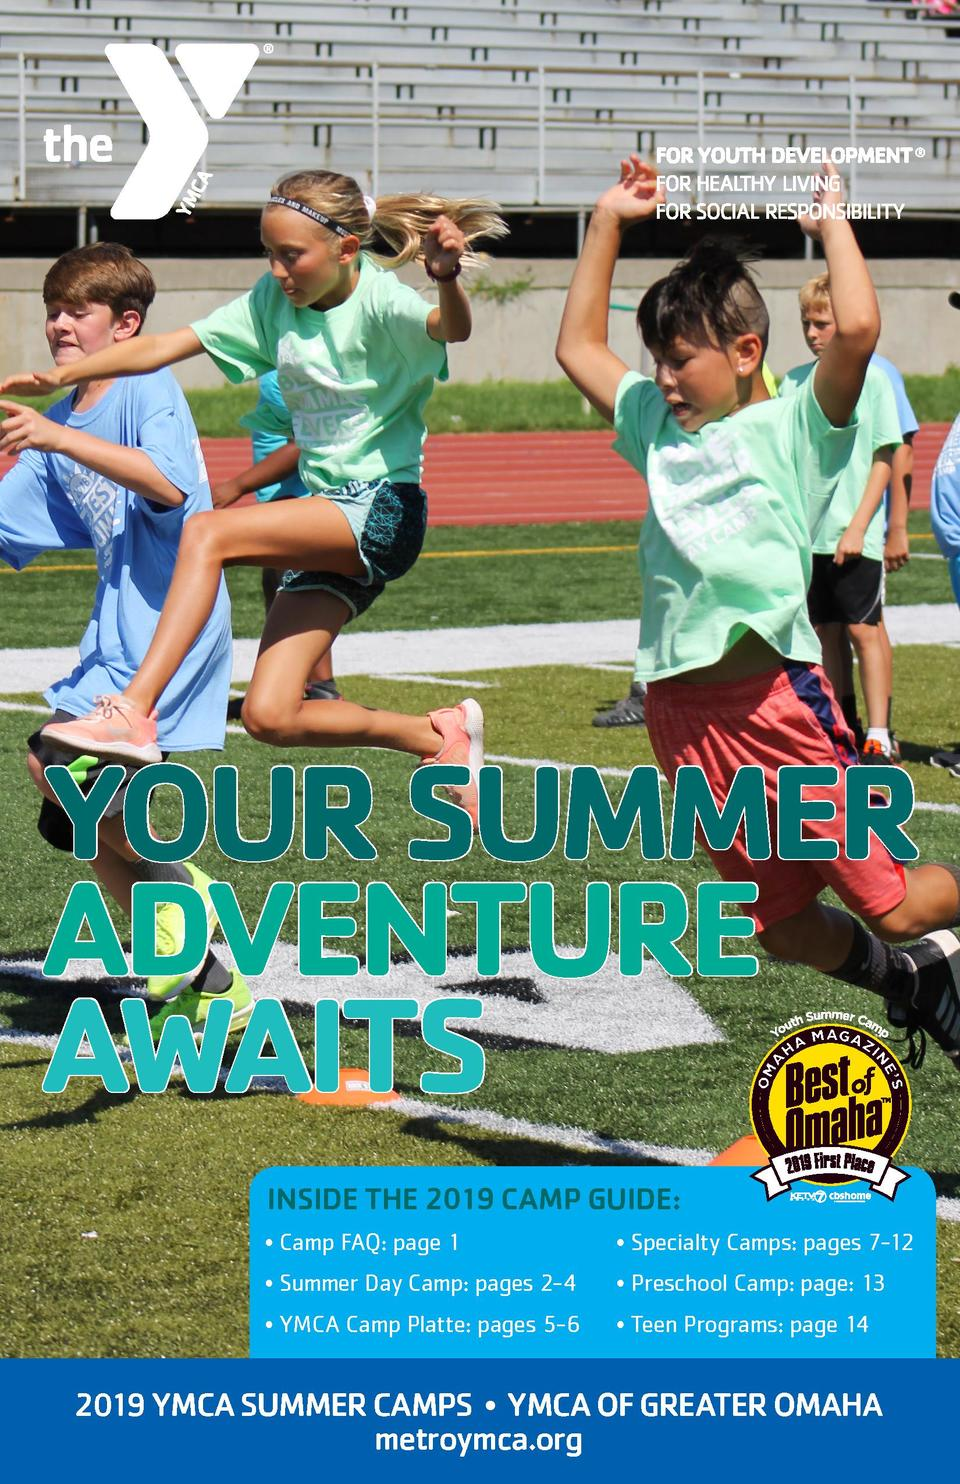 YOUR SUMMER ADVENTURE AWAITS INSIDE THE 2019 CAMP GUIDE      Camp FAQ  page 1      Specialty Camps  pages 7-12      Summer...